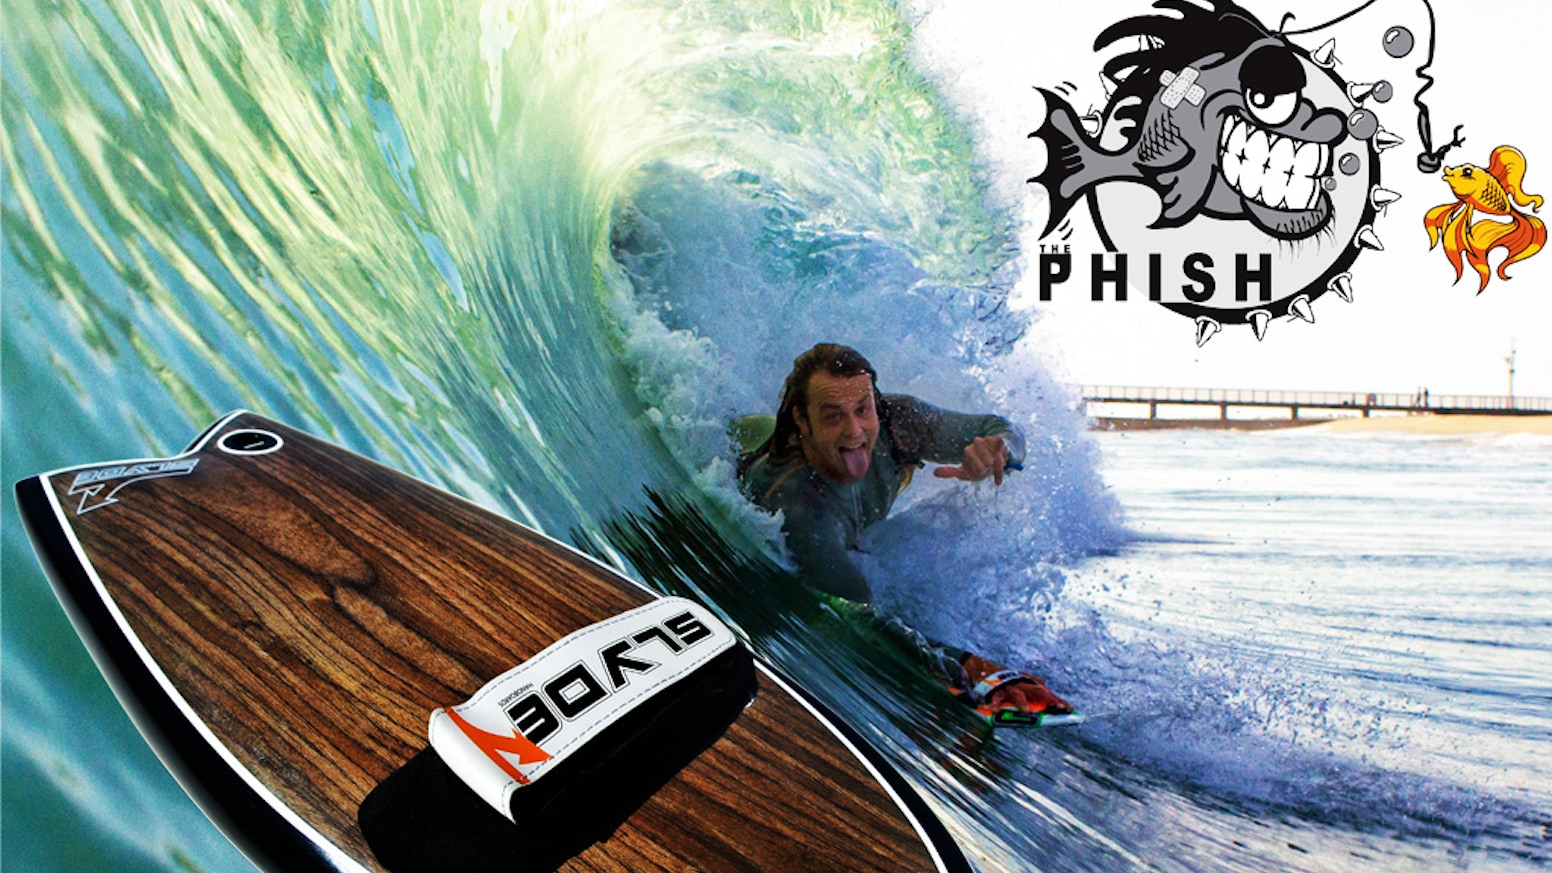 The Slyde Phish, an exhilarating new way to surf.  From expert-beginner slyde your hand into the Phish and get hooked on handboarding.